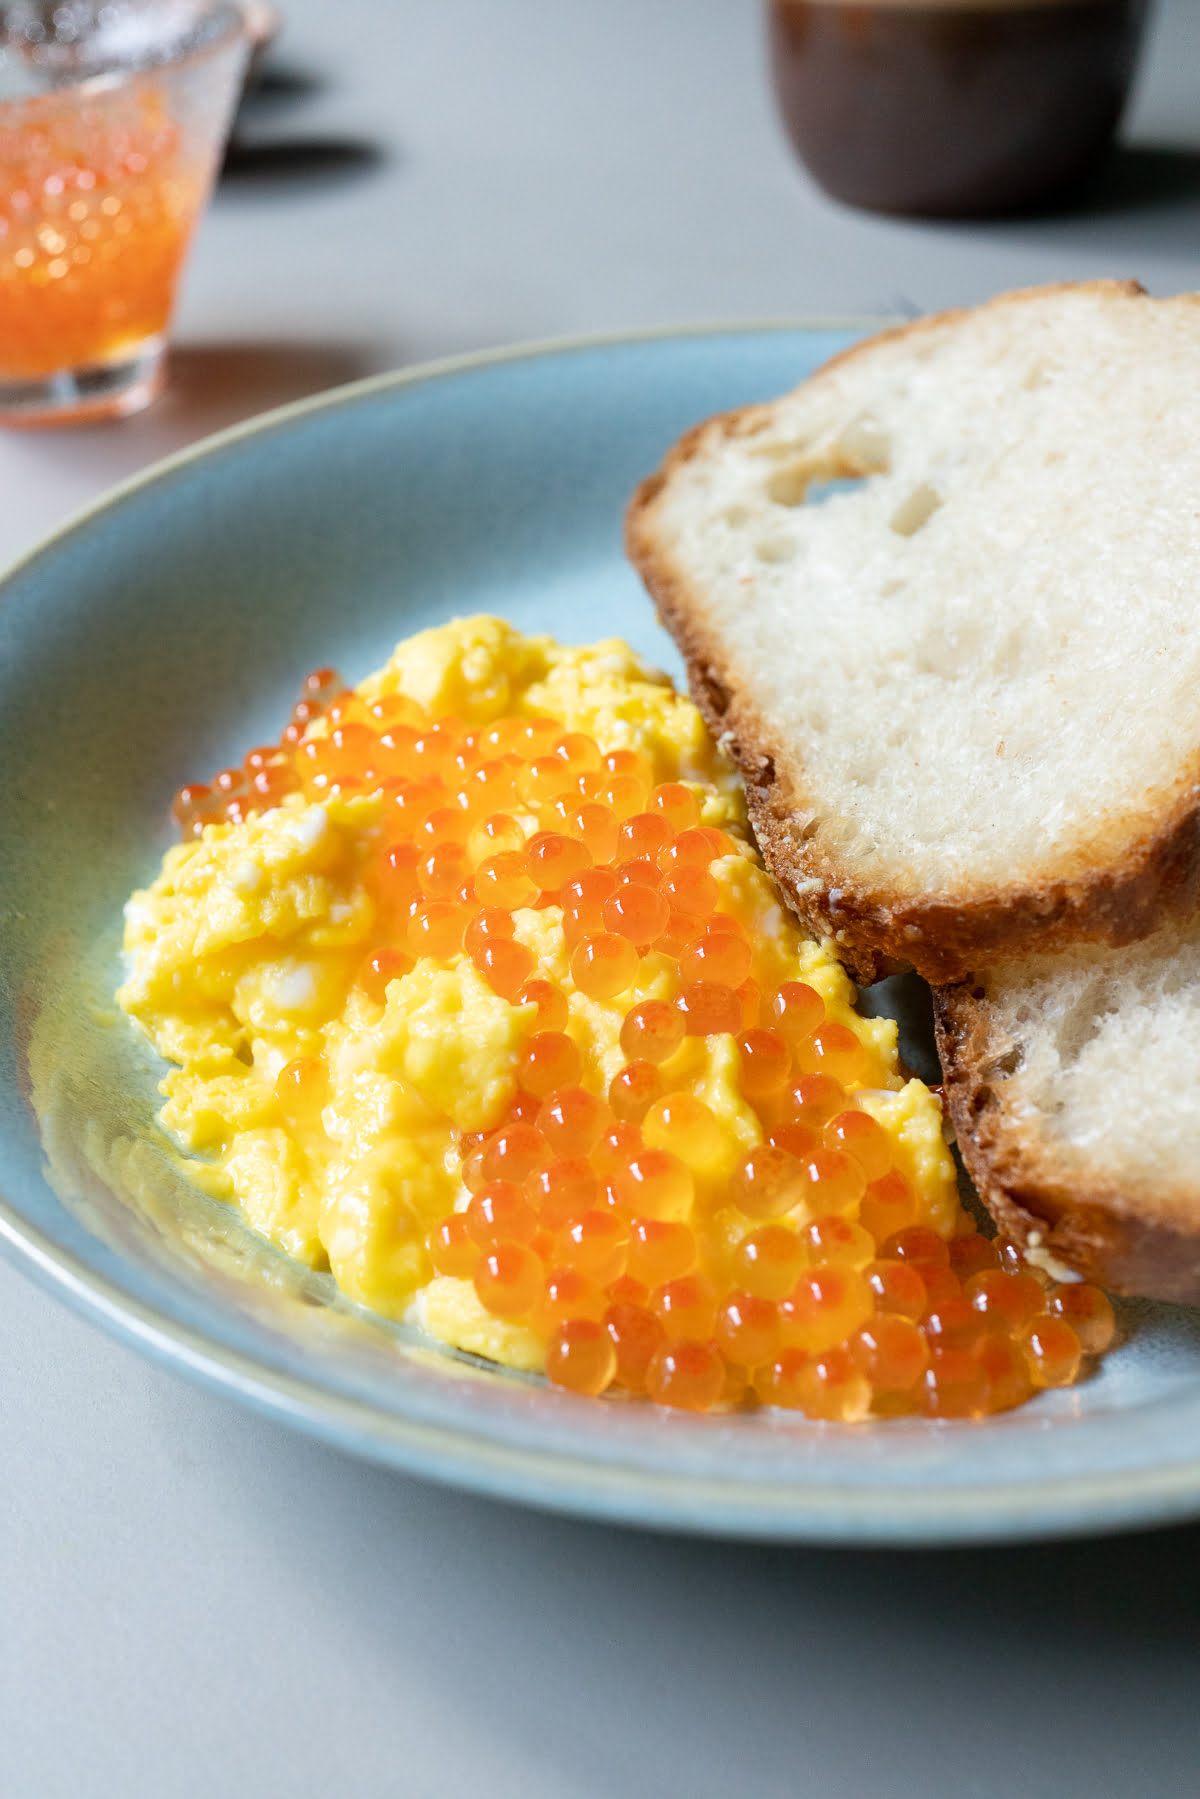 Salt-cured salmon roe over scrambled eggs with a side of toast.